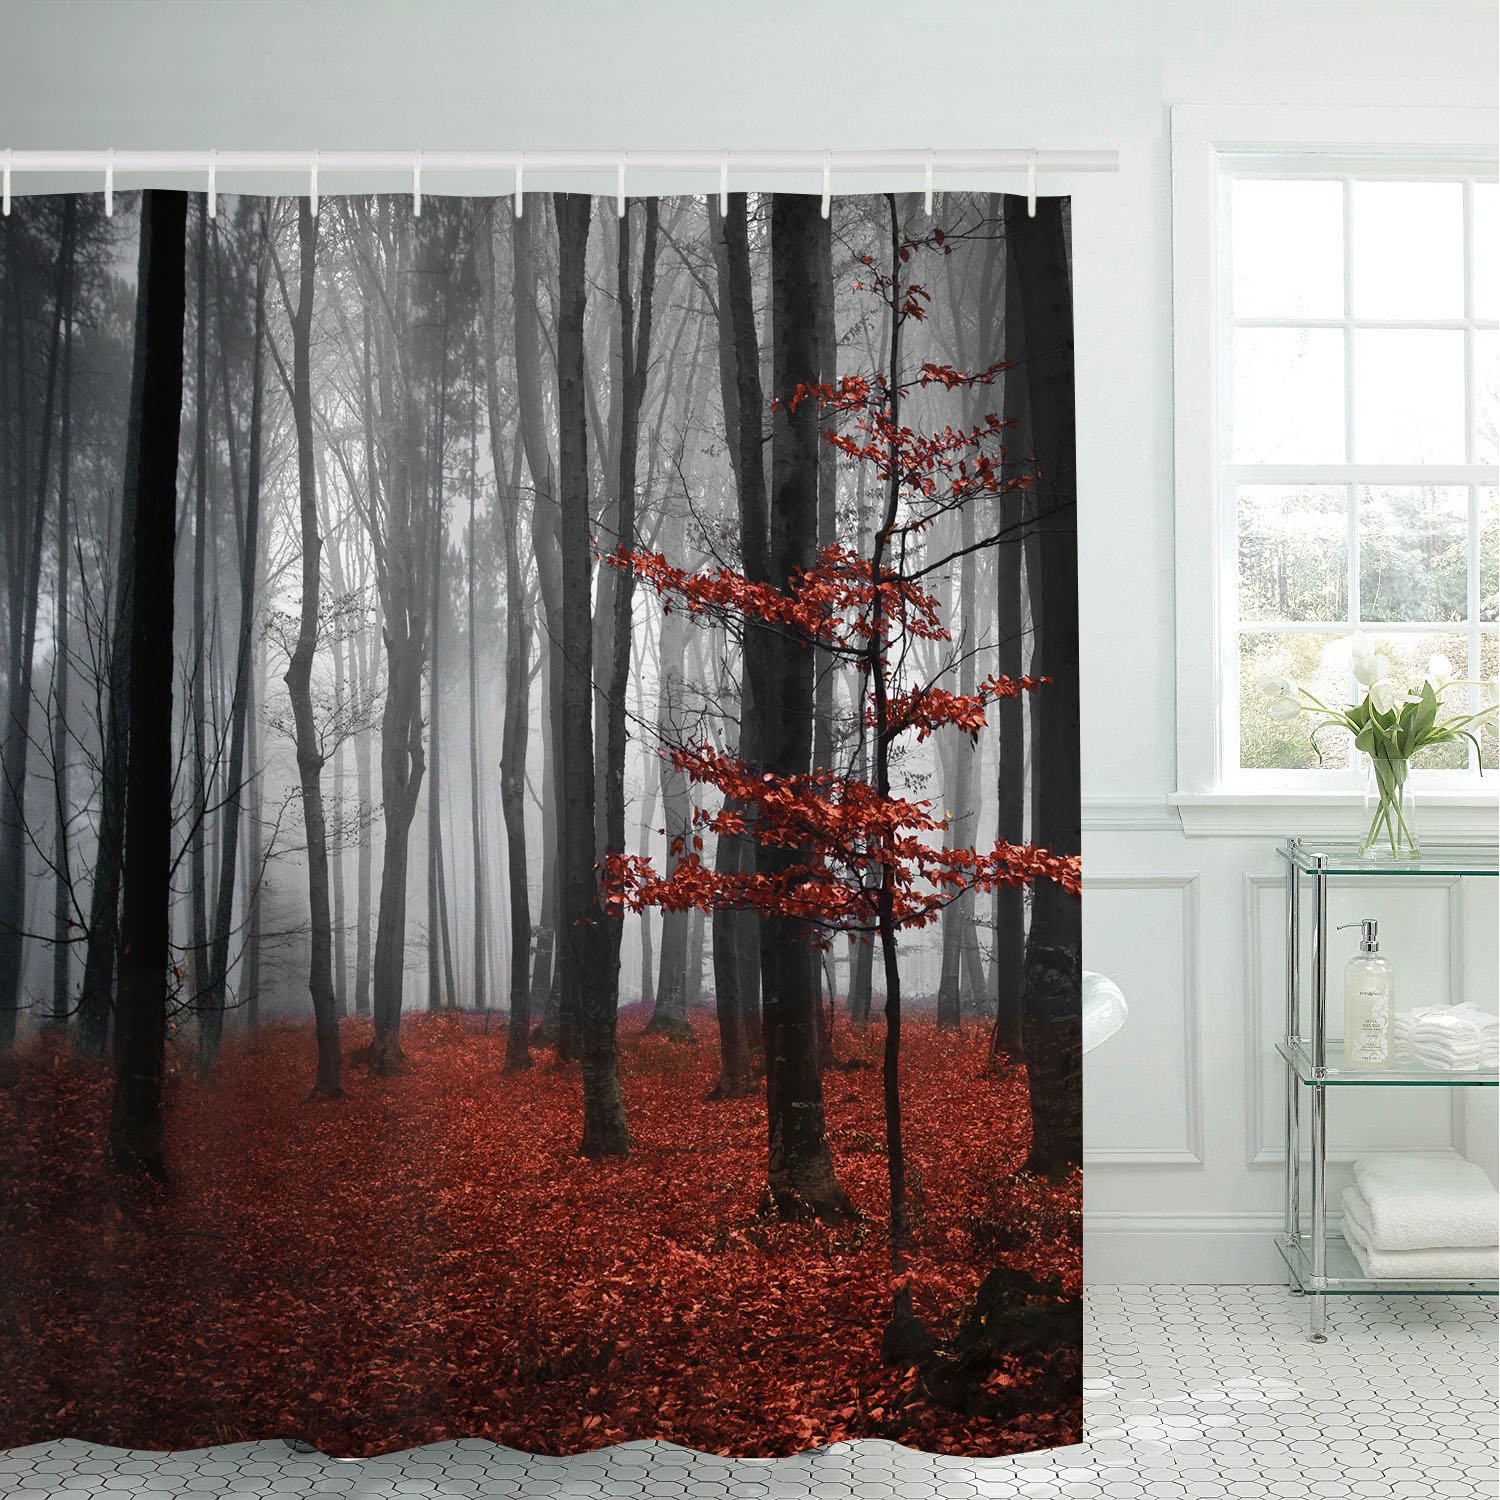 modern timesm Bathroom Shower Curtain Mystic Forest Bathroom Curtain with 12 Hooks, Trees Red Leaves Shower Curtains Durable Waterproof Fabric Bath Curtain